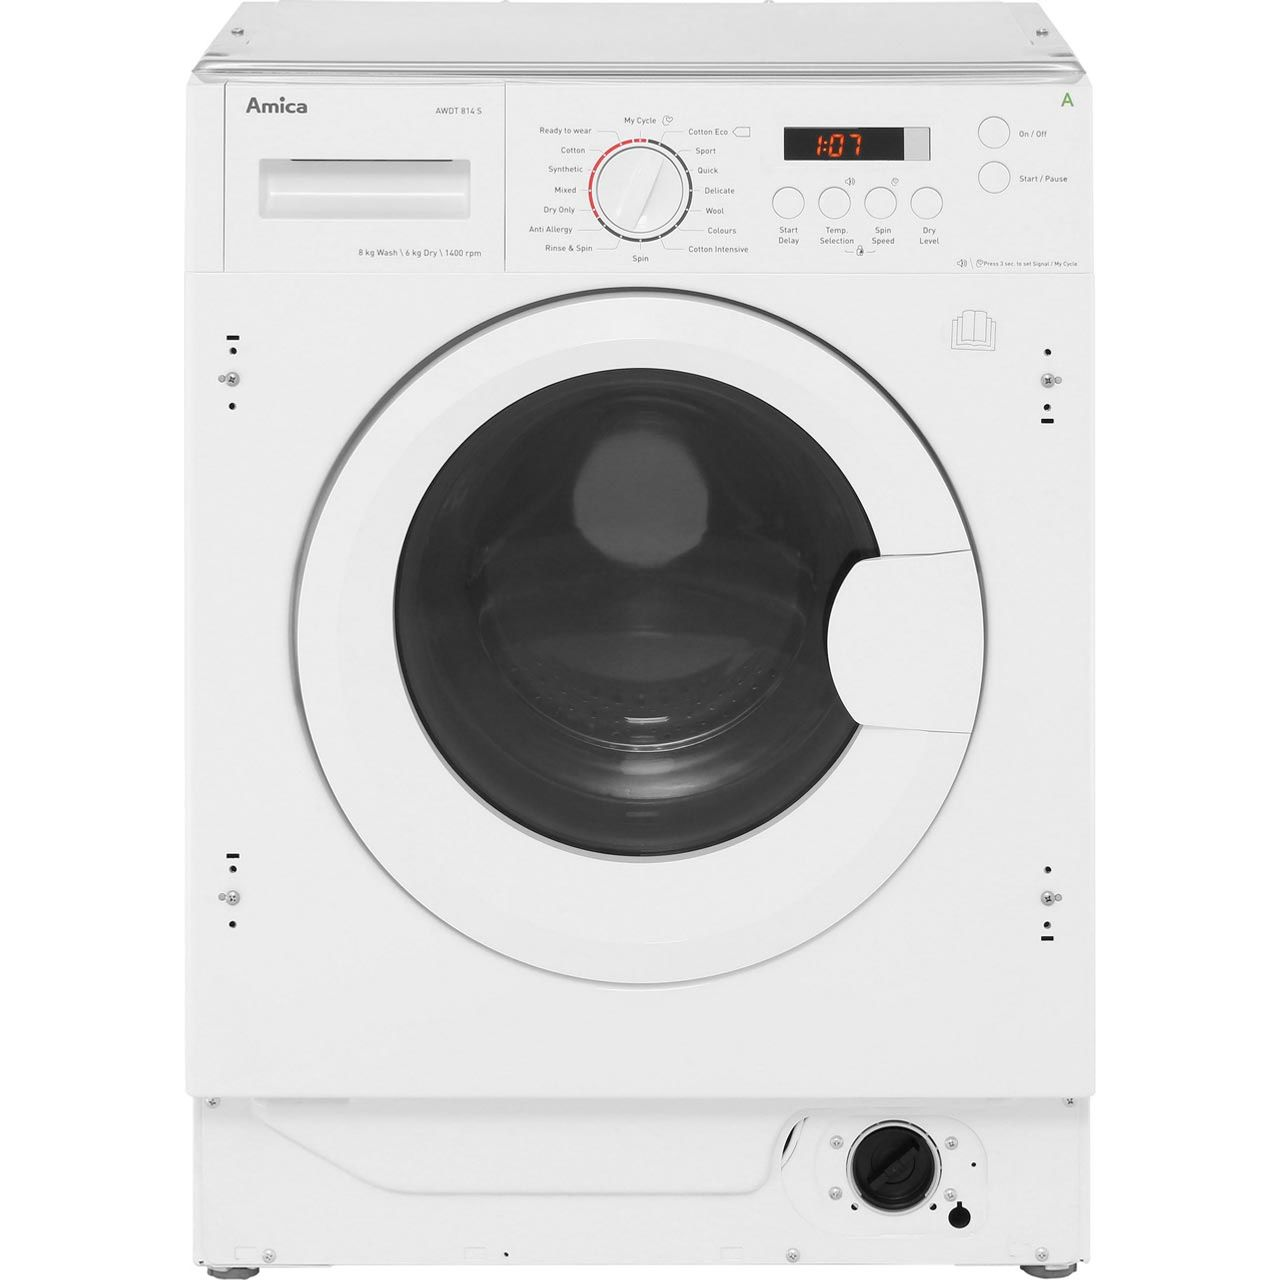 Amica AWDT814S Integrated 8Kg / 6Kg Washer Dryer review